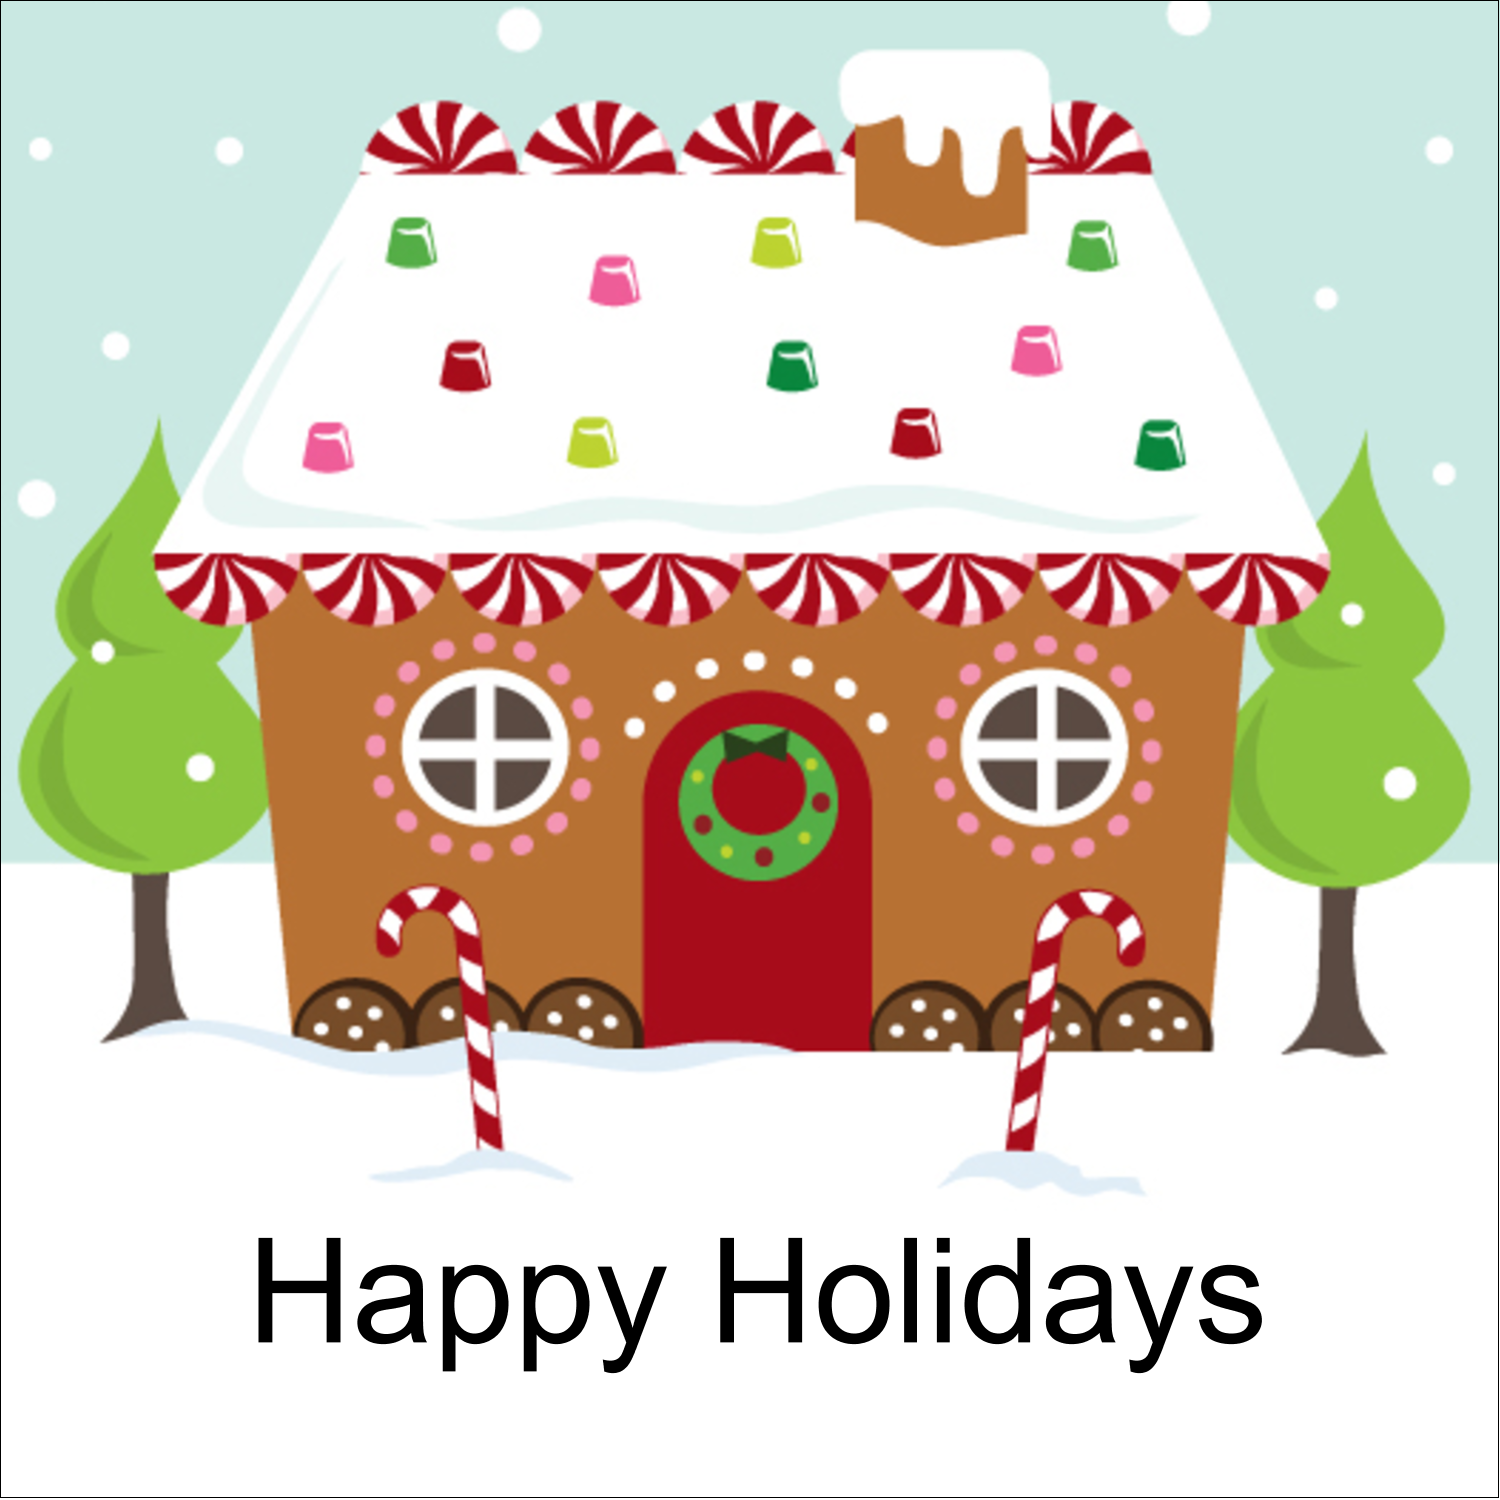 "2"" x 2"" Square Label - Gingerbread House"